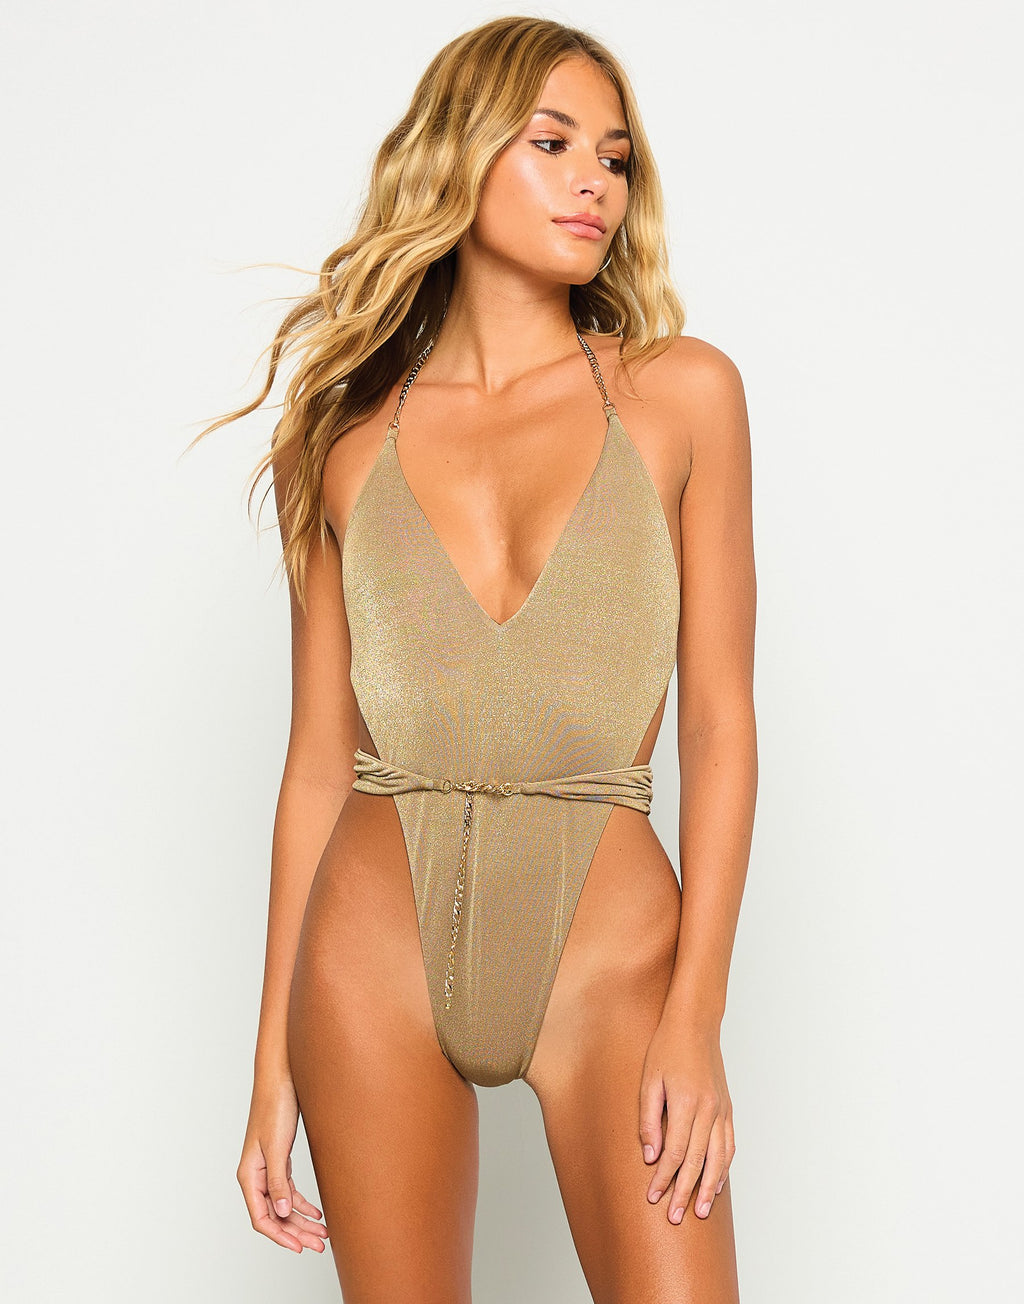 Brooklyn One Piece in Tortuga with Gold Chain Hardware - Front View